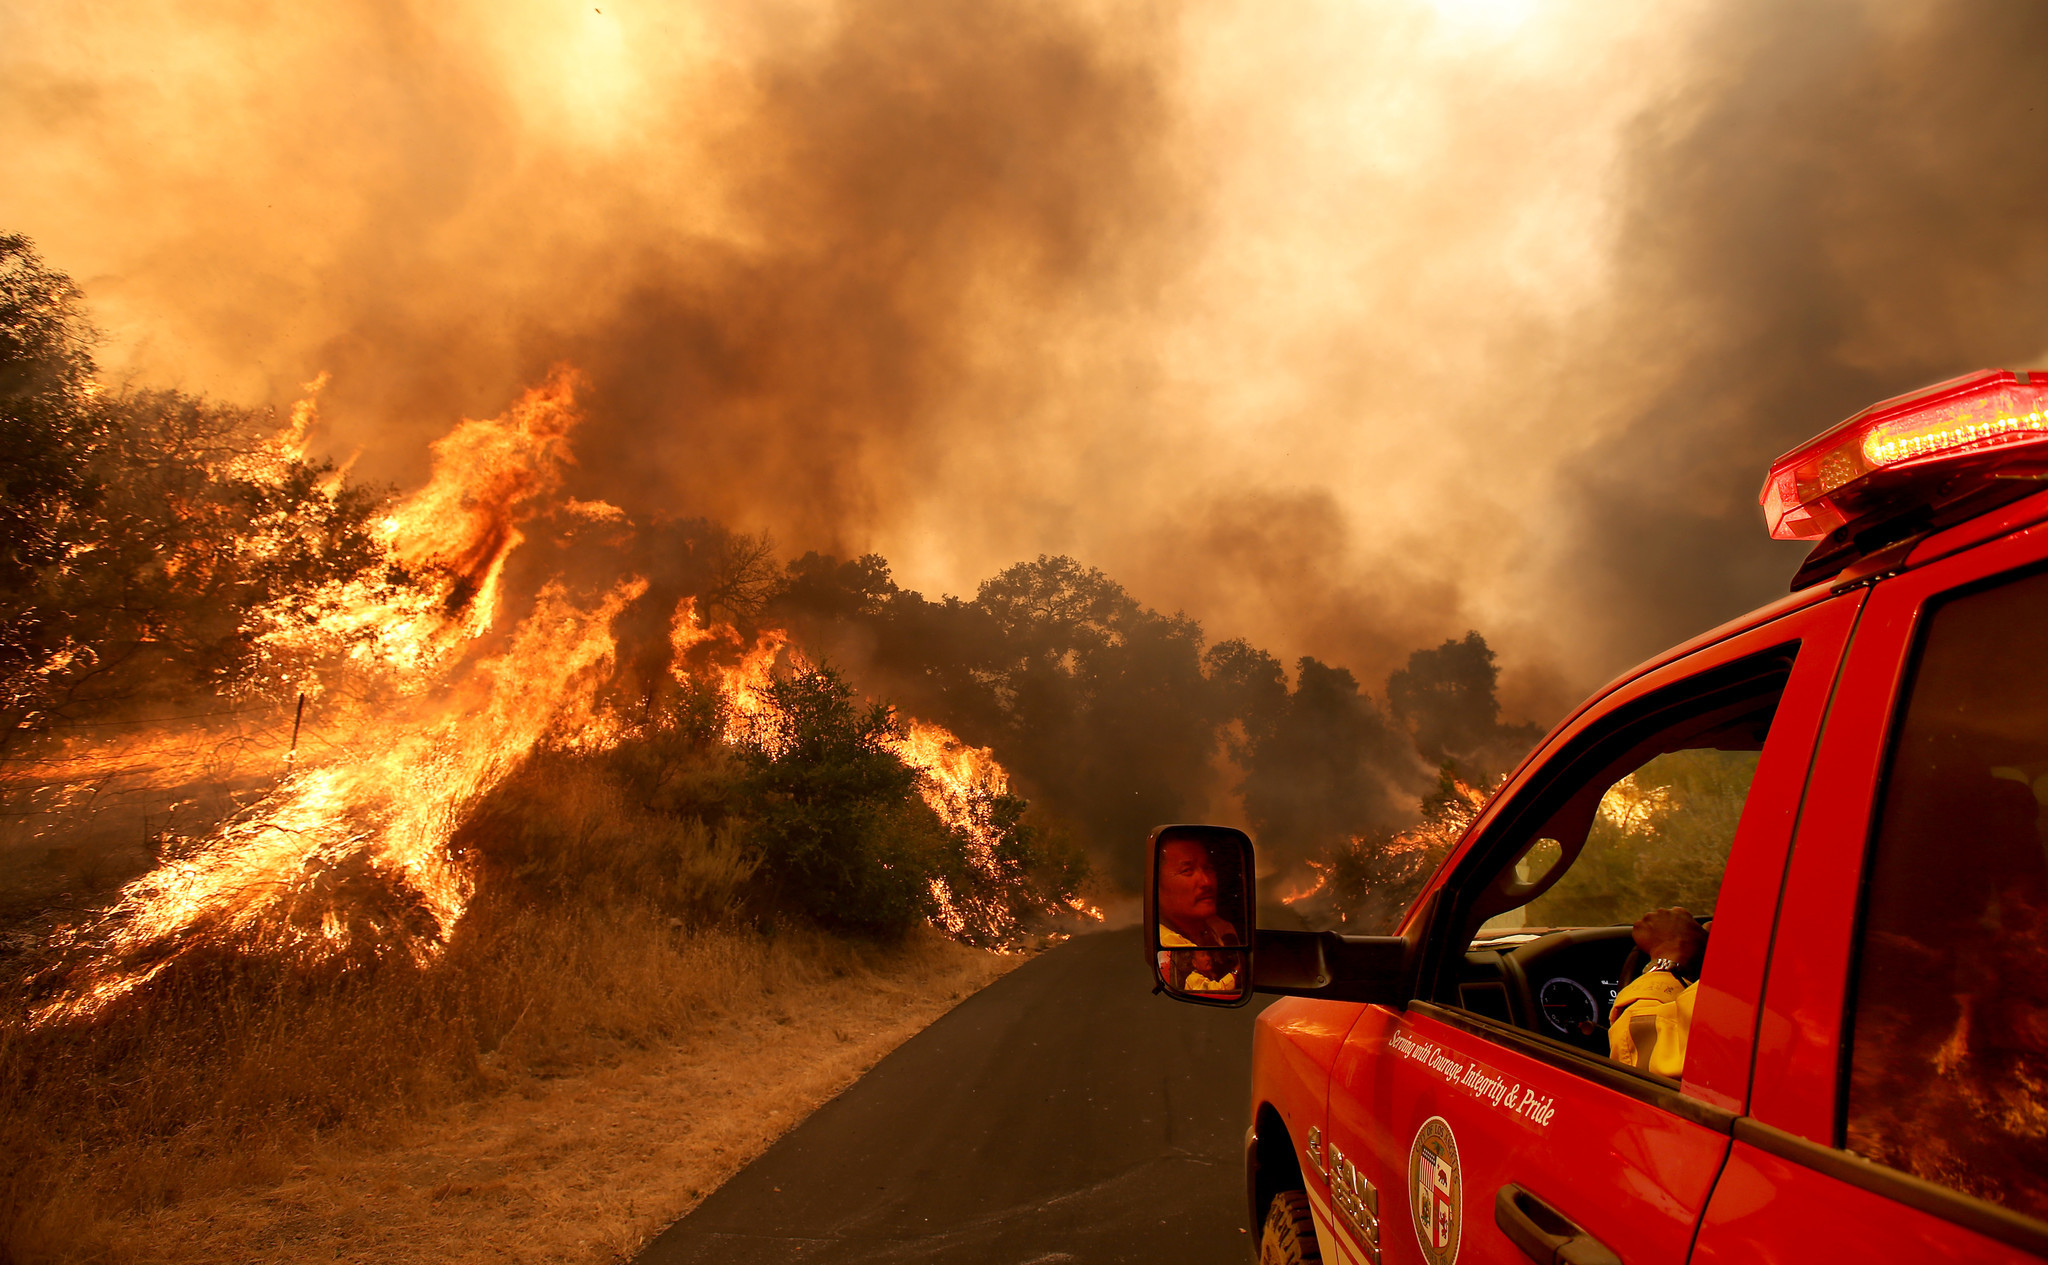 A firefighter maneuvers his vehicle down a private road as  the Alamo fire burns near Santa Maria on July 8, 2017. The fire has charred more than 6,000 acres in remote canyons along Highway 166, fed by dry brush and trees in an area that has not burned in many years.